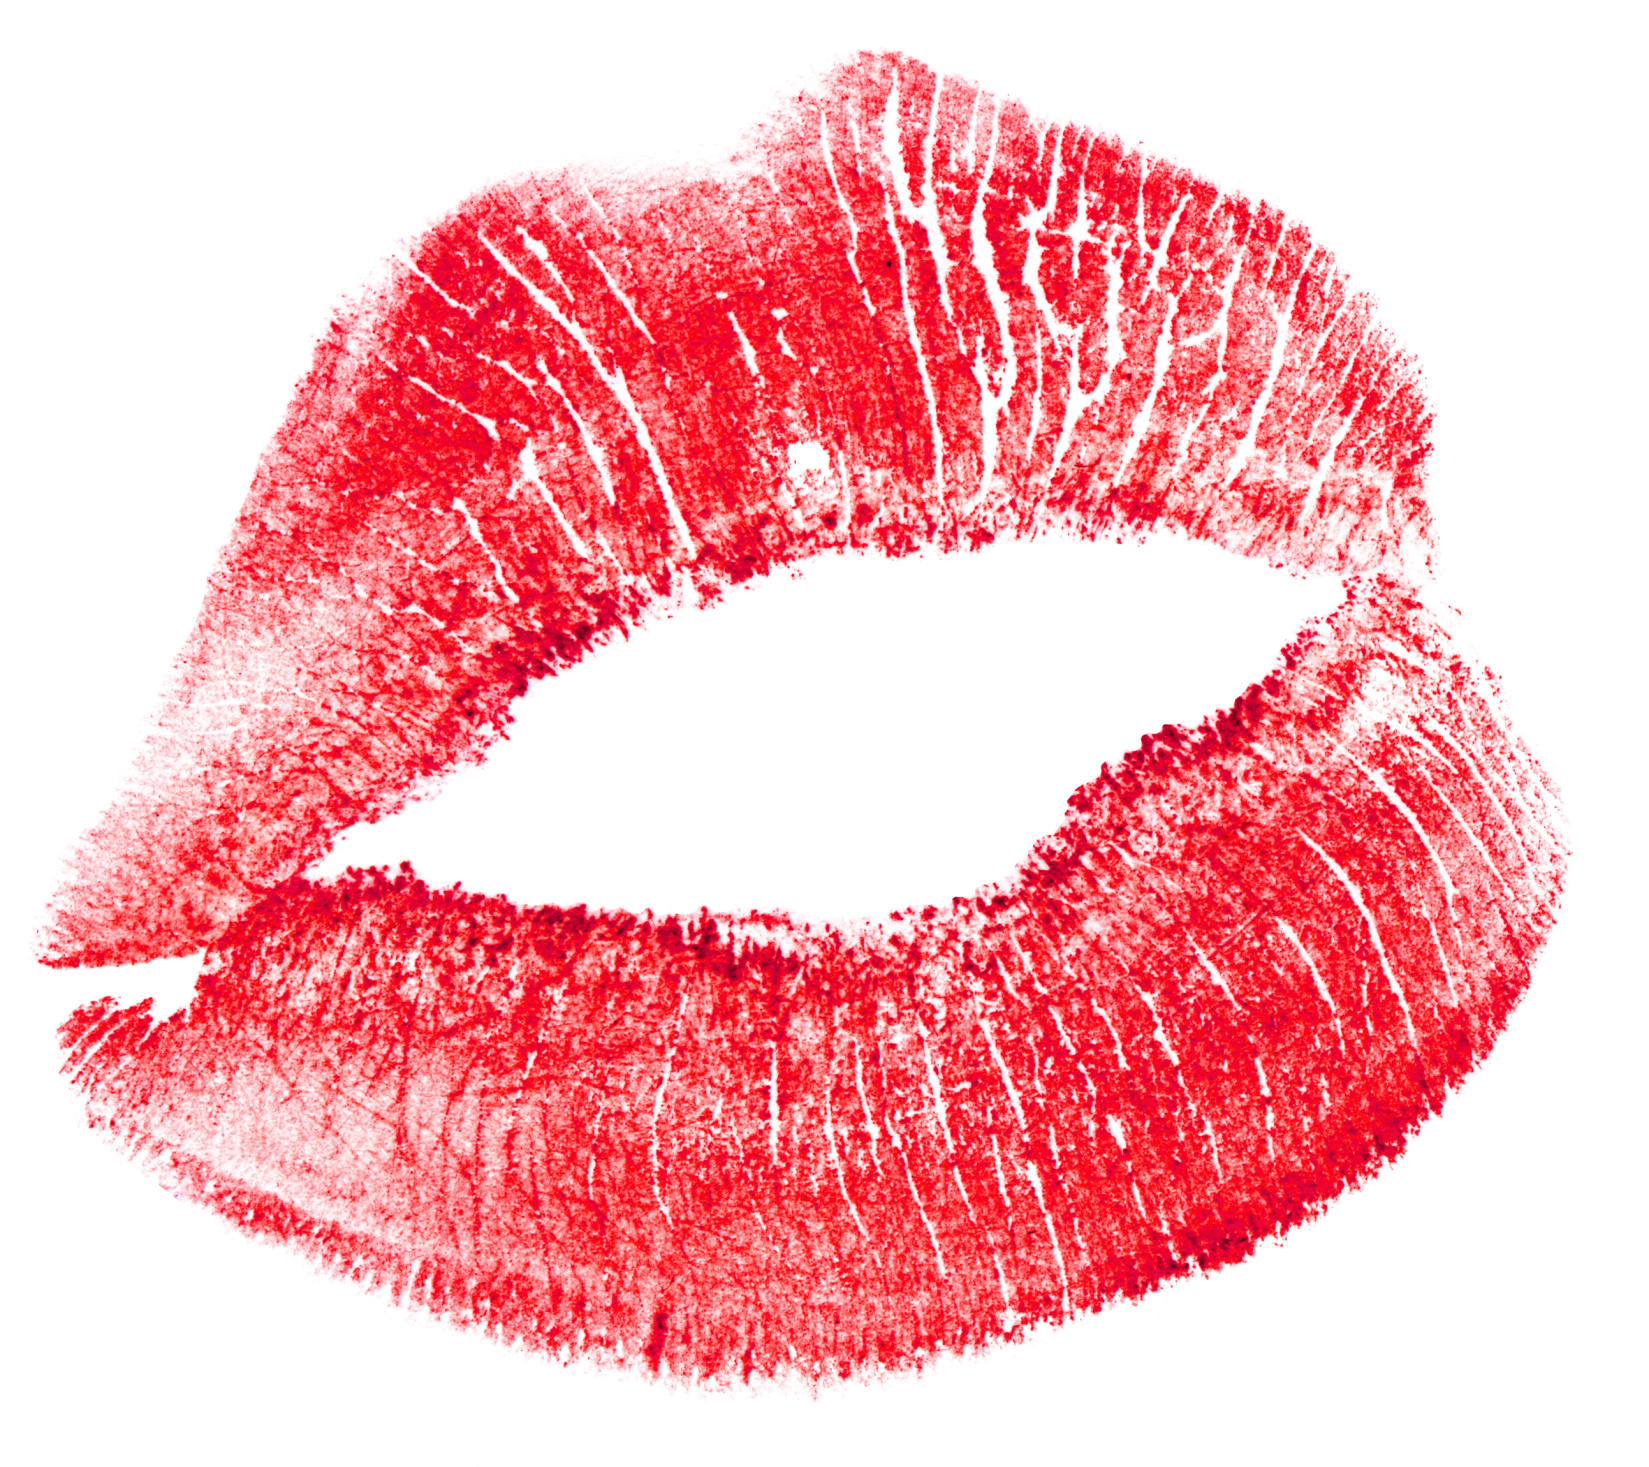 Lip clipart kissey. Lips png image free